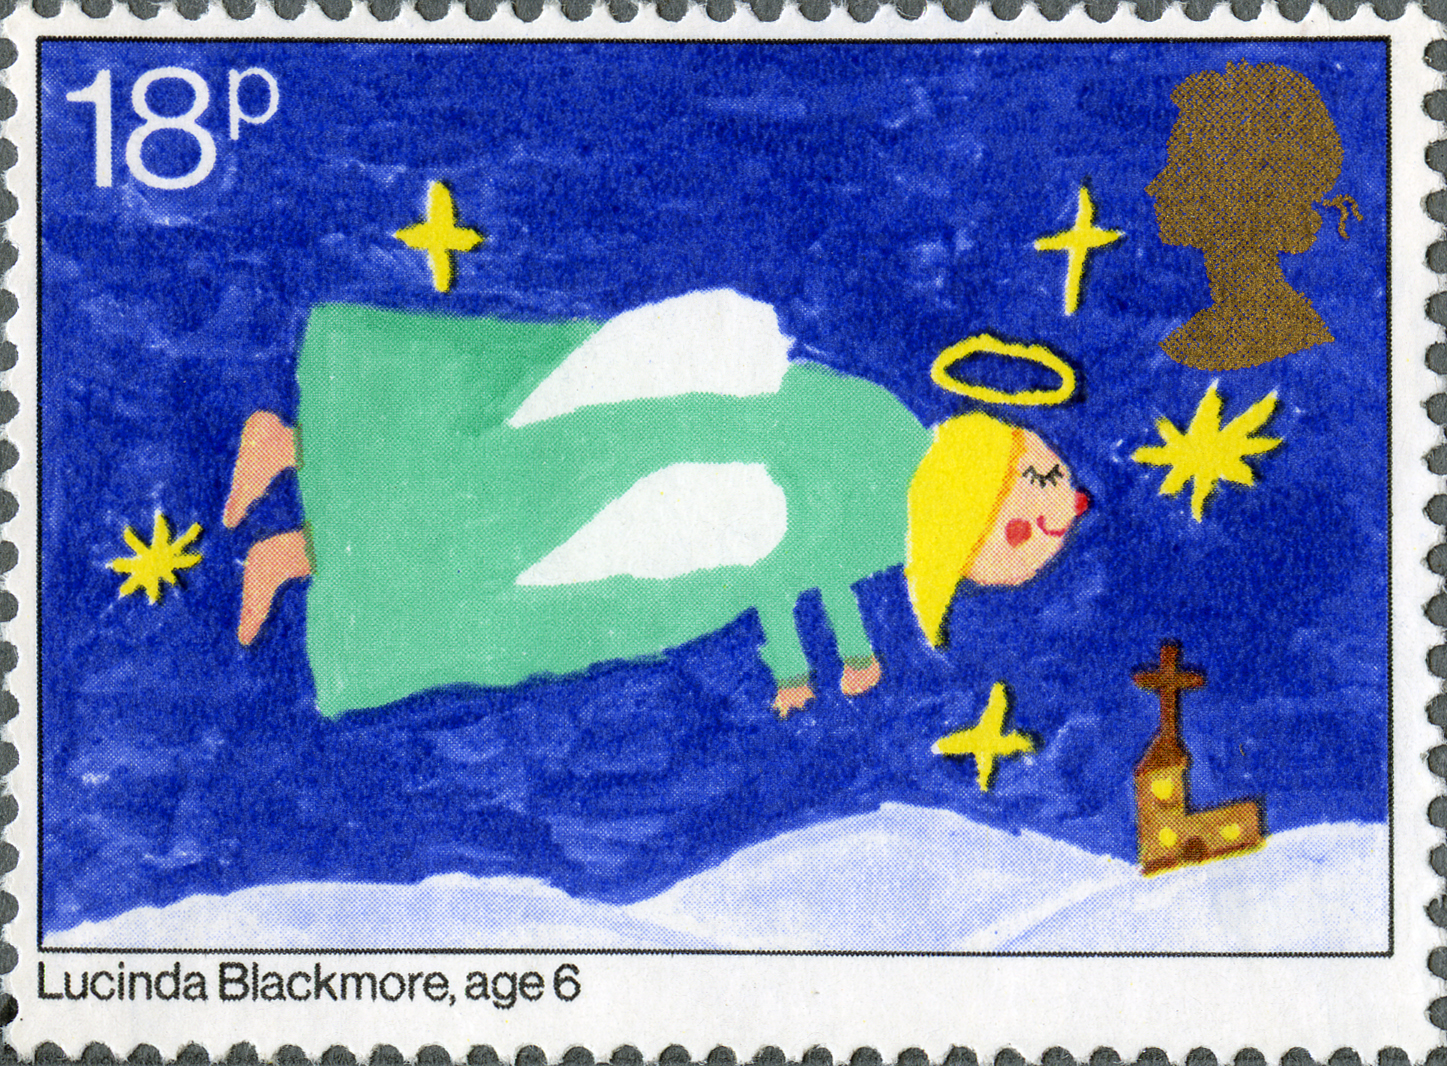 A stamp which depicts a child's painting of an angel flying above a landscape with a blue sky and gold stars.